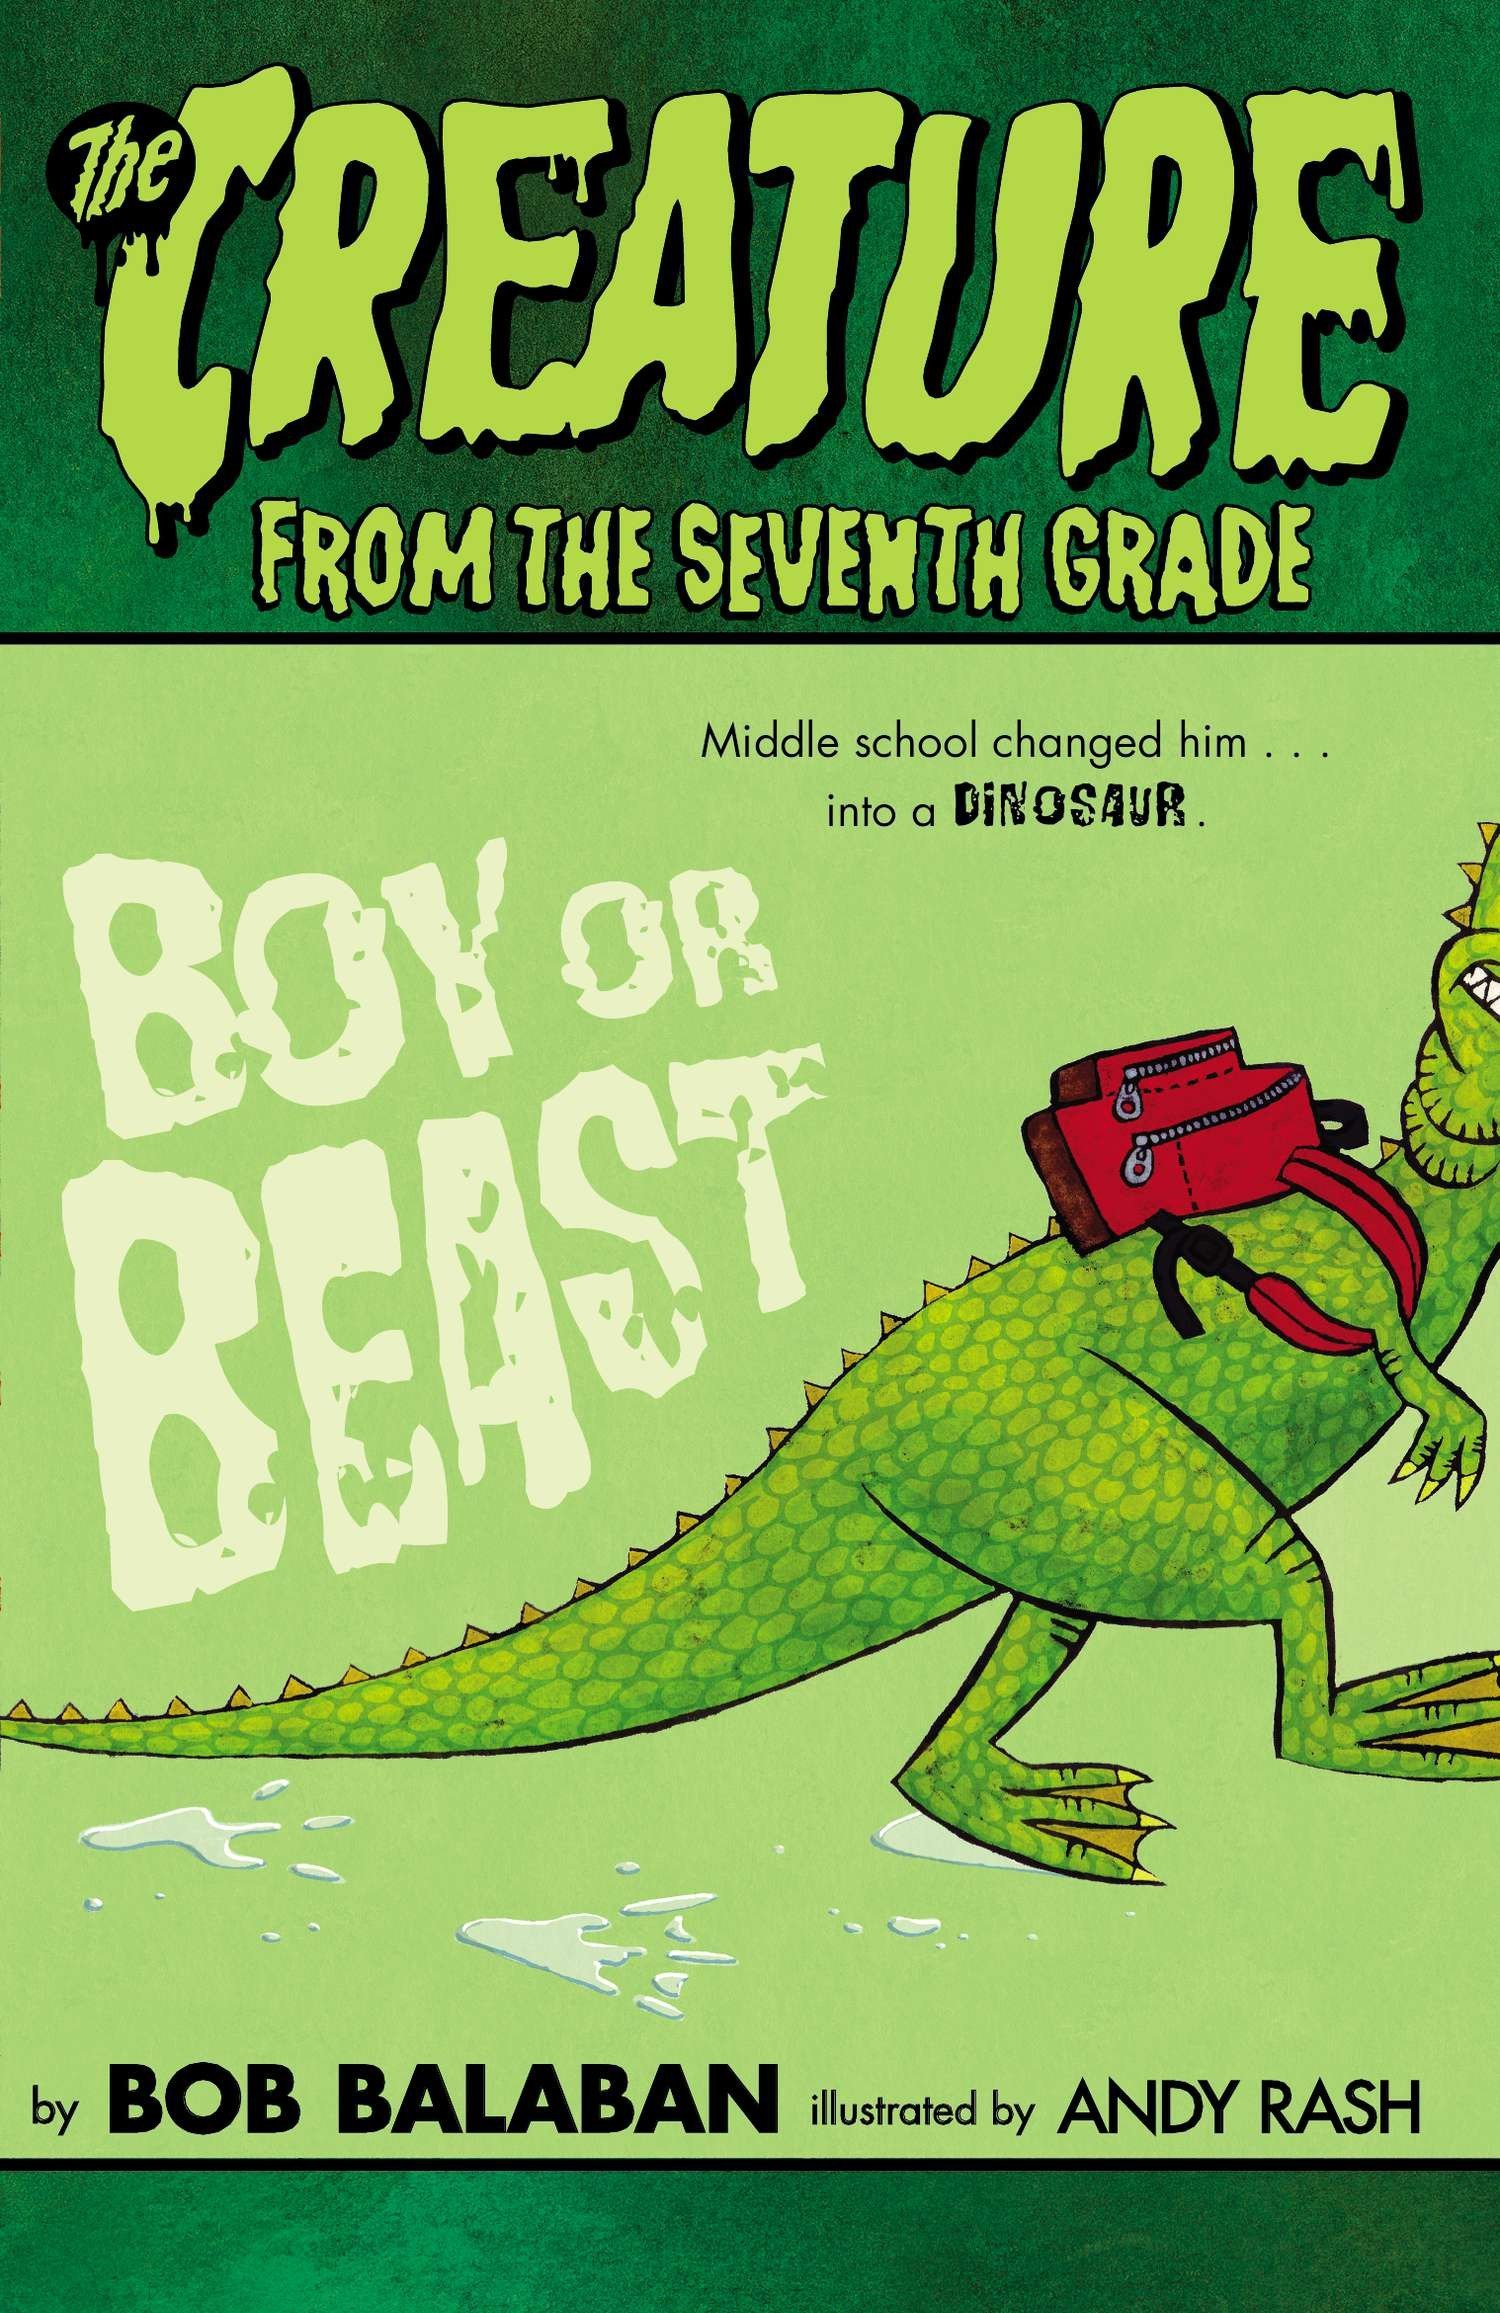 Boy or Beast (Creature from the 7th Grade) PDF